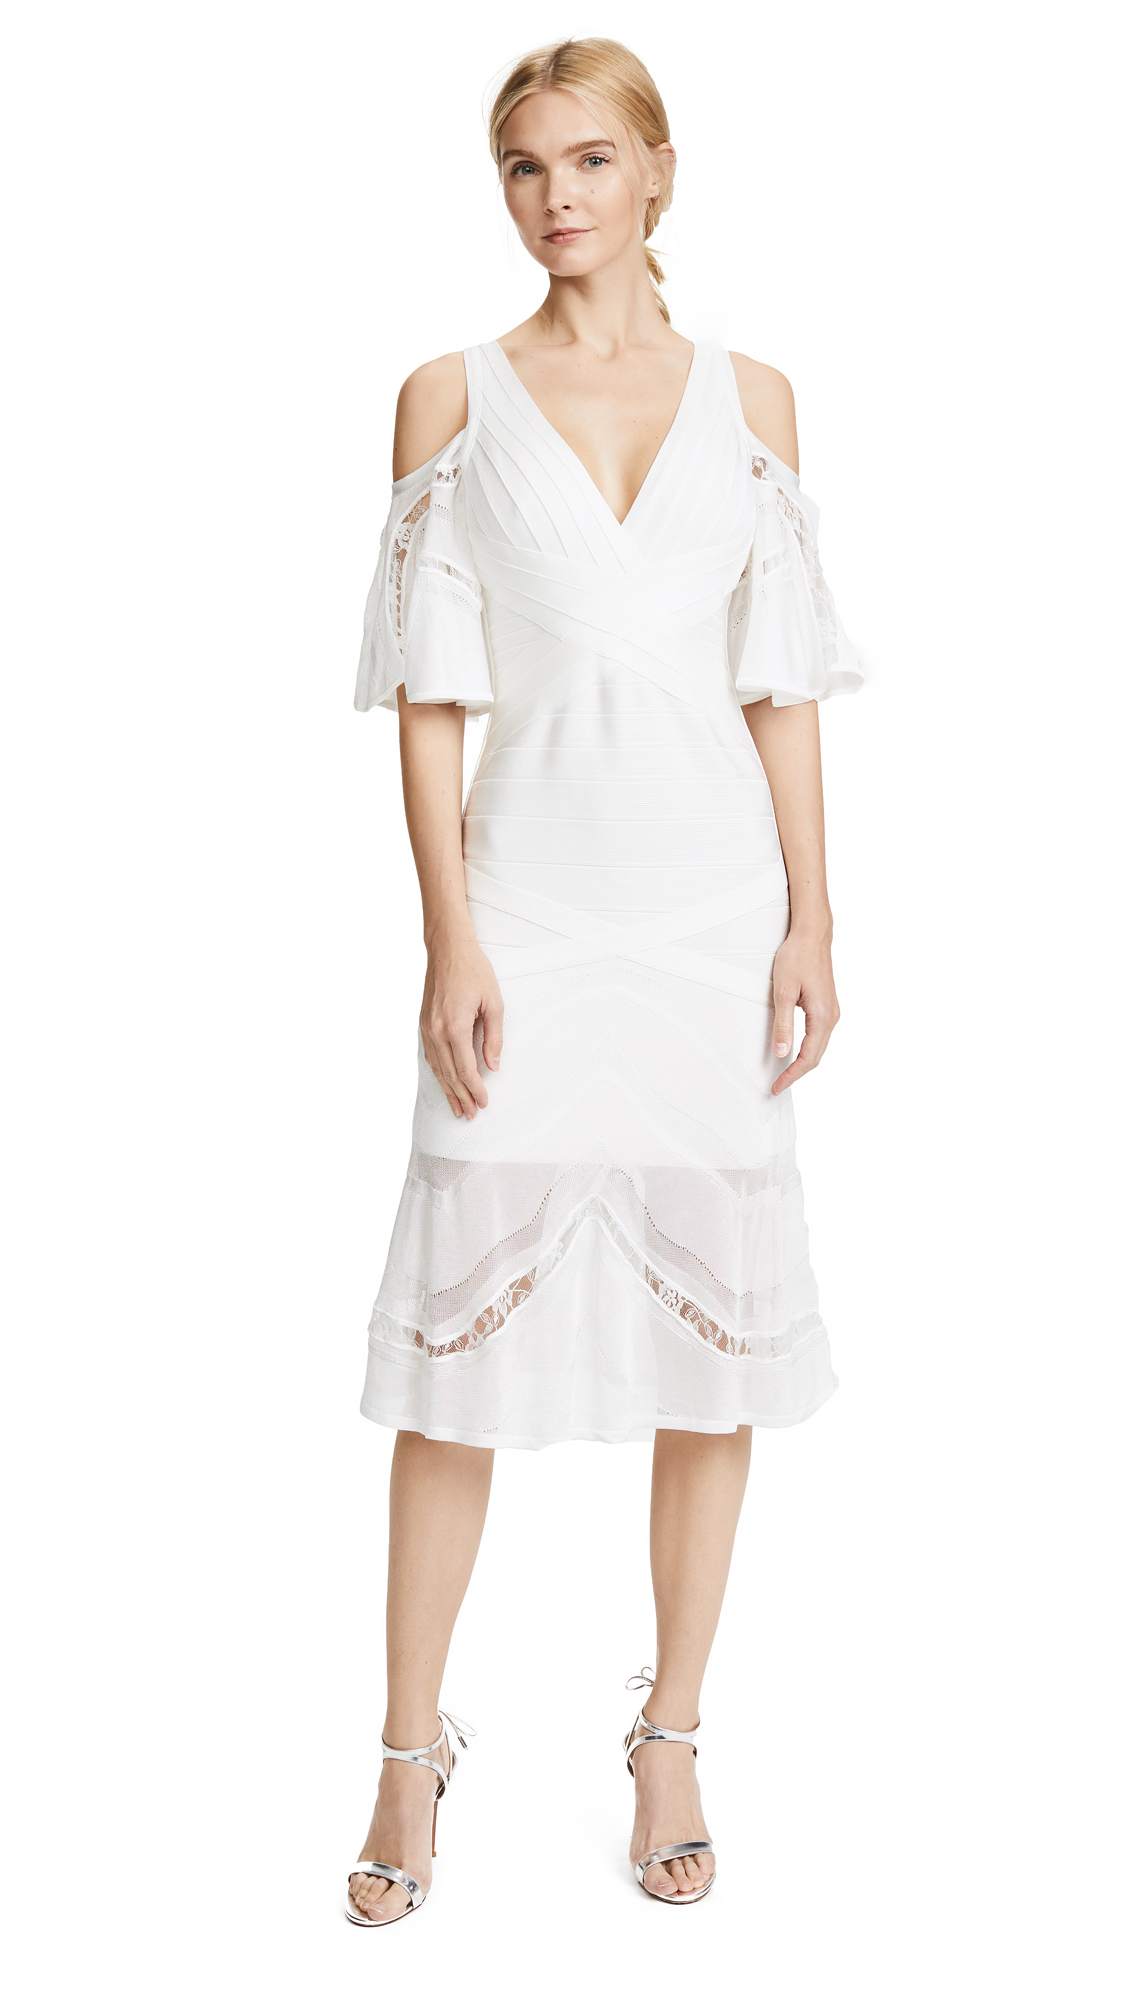 Herve Leger V Neck Cold Shoulder Dress - Alabaster